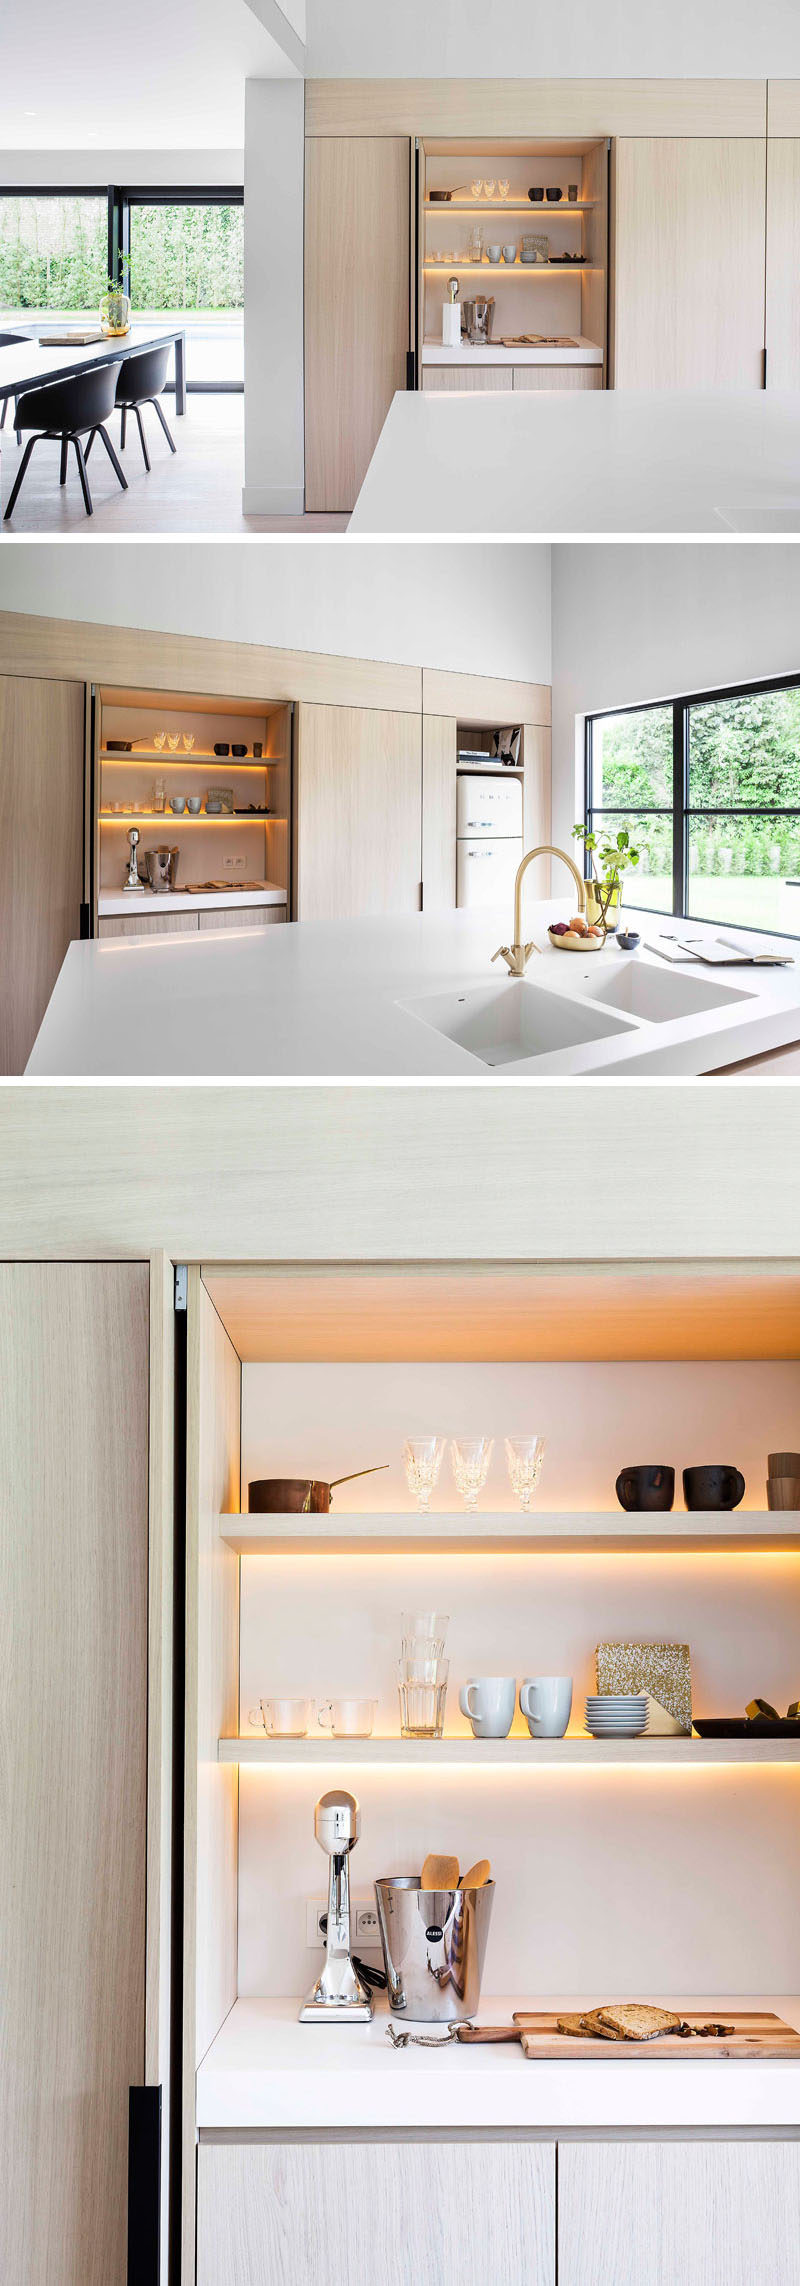 Light Wood And White Countertops Create A Neutral Softness In This ...